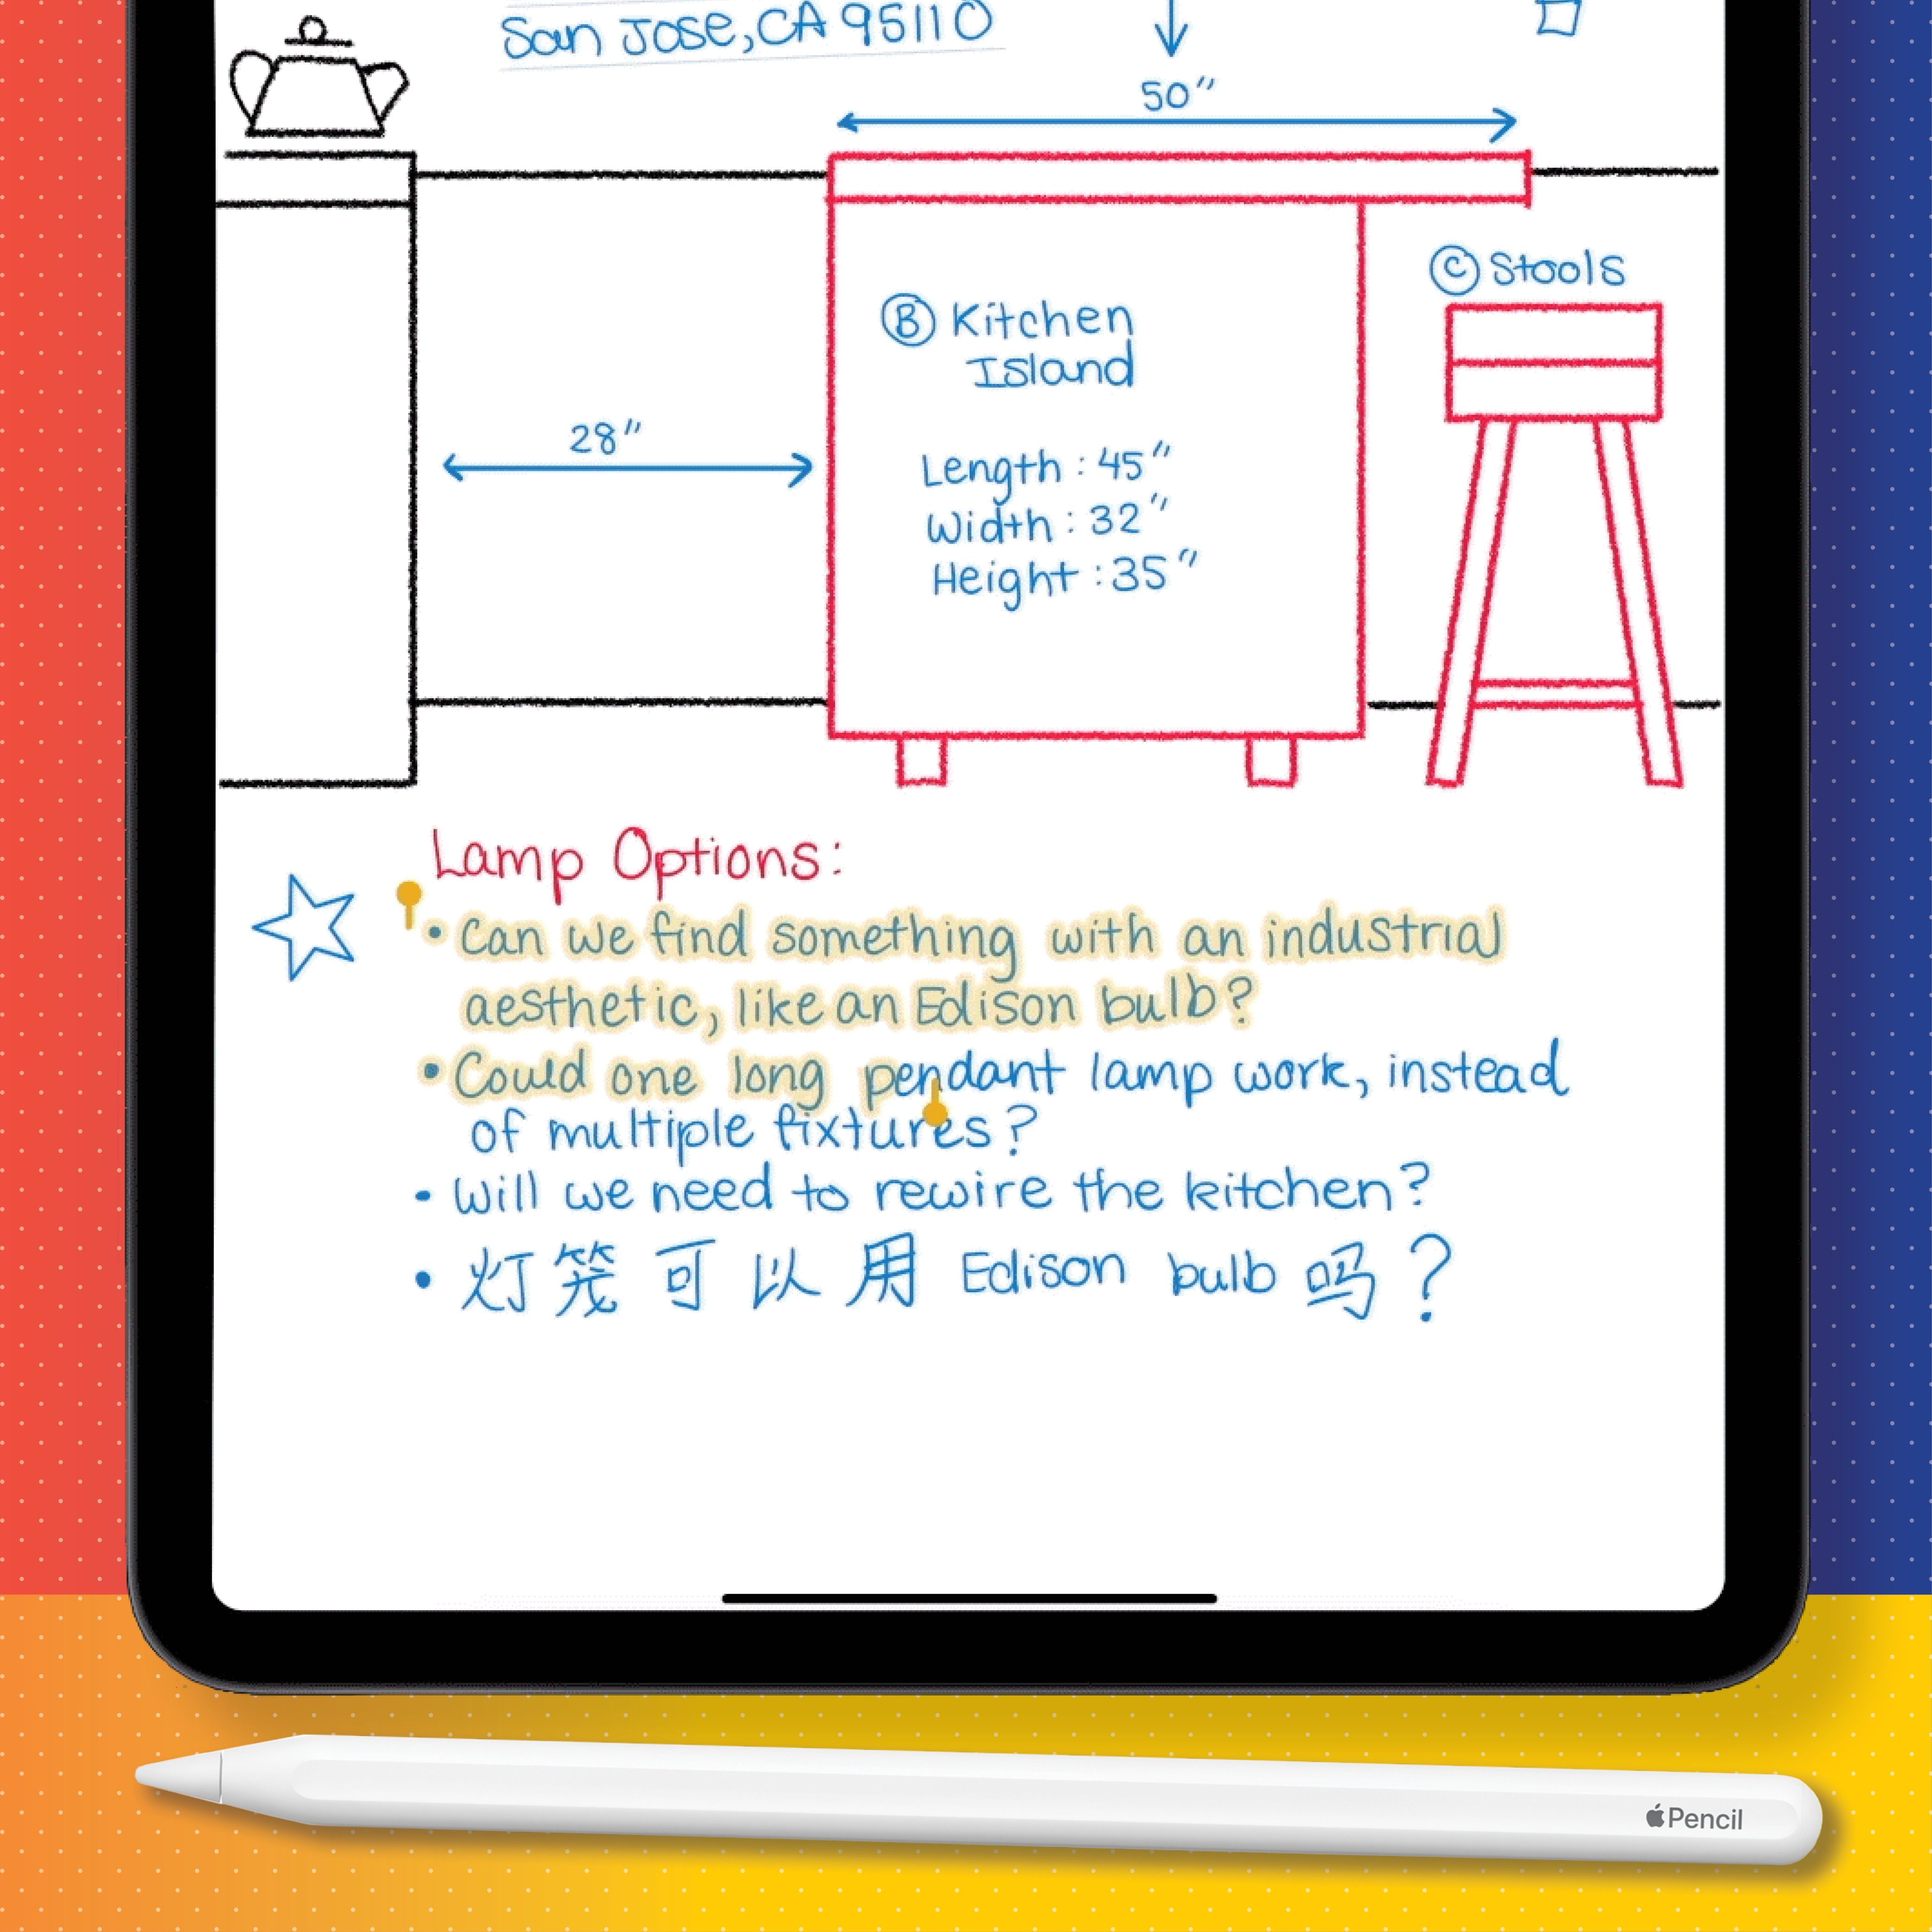 The iPad's Handwriting Recognition Shows How Apple Does Machine Learning